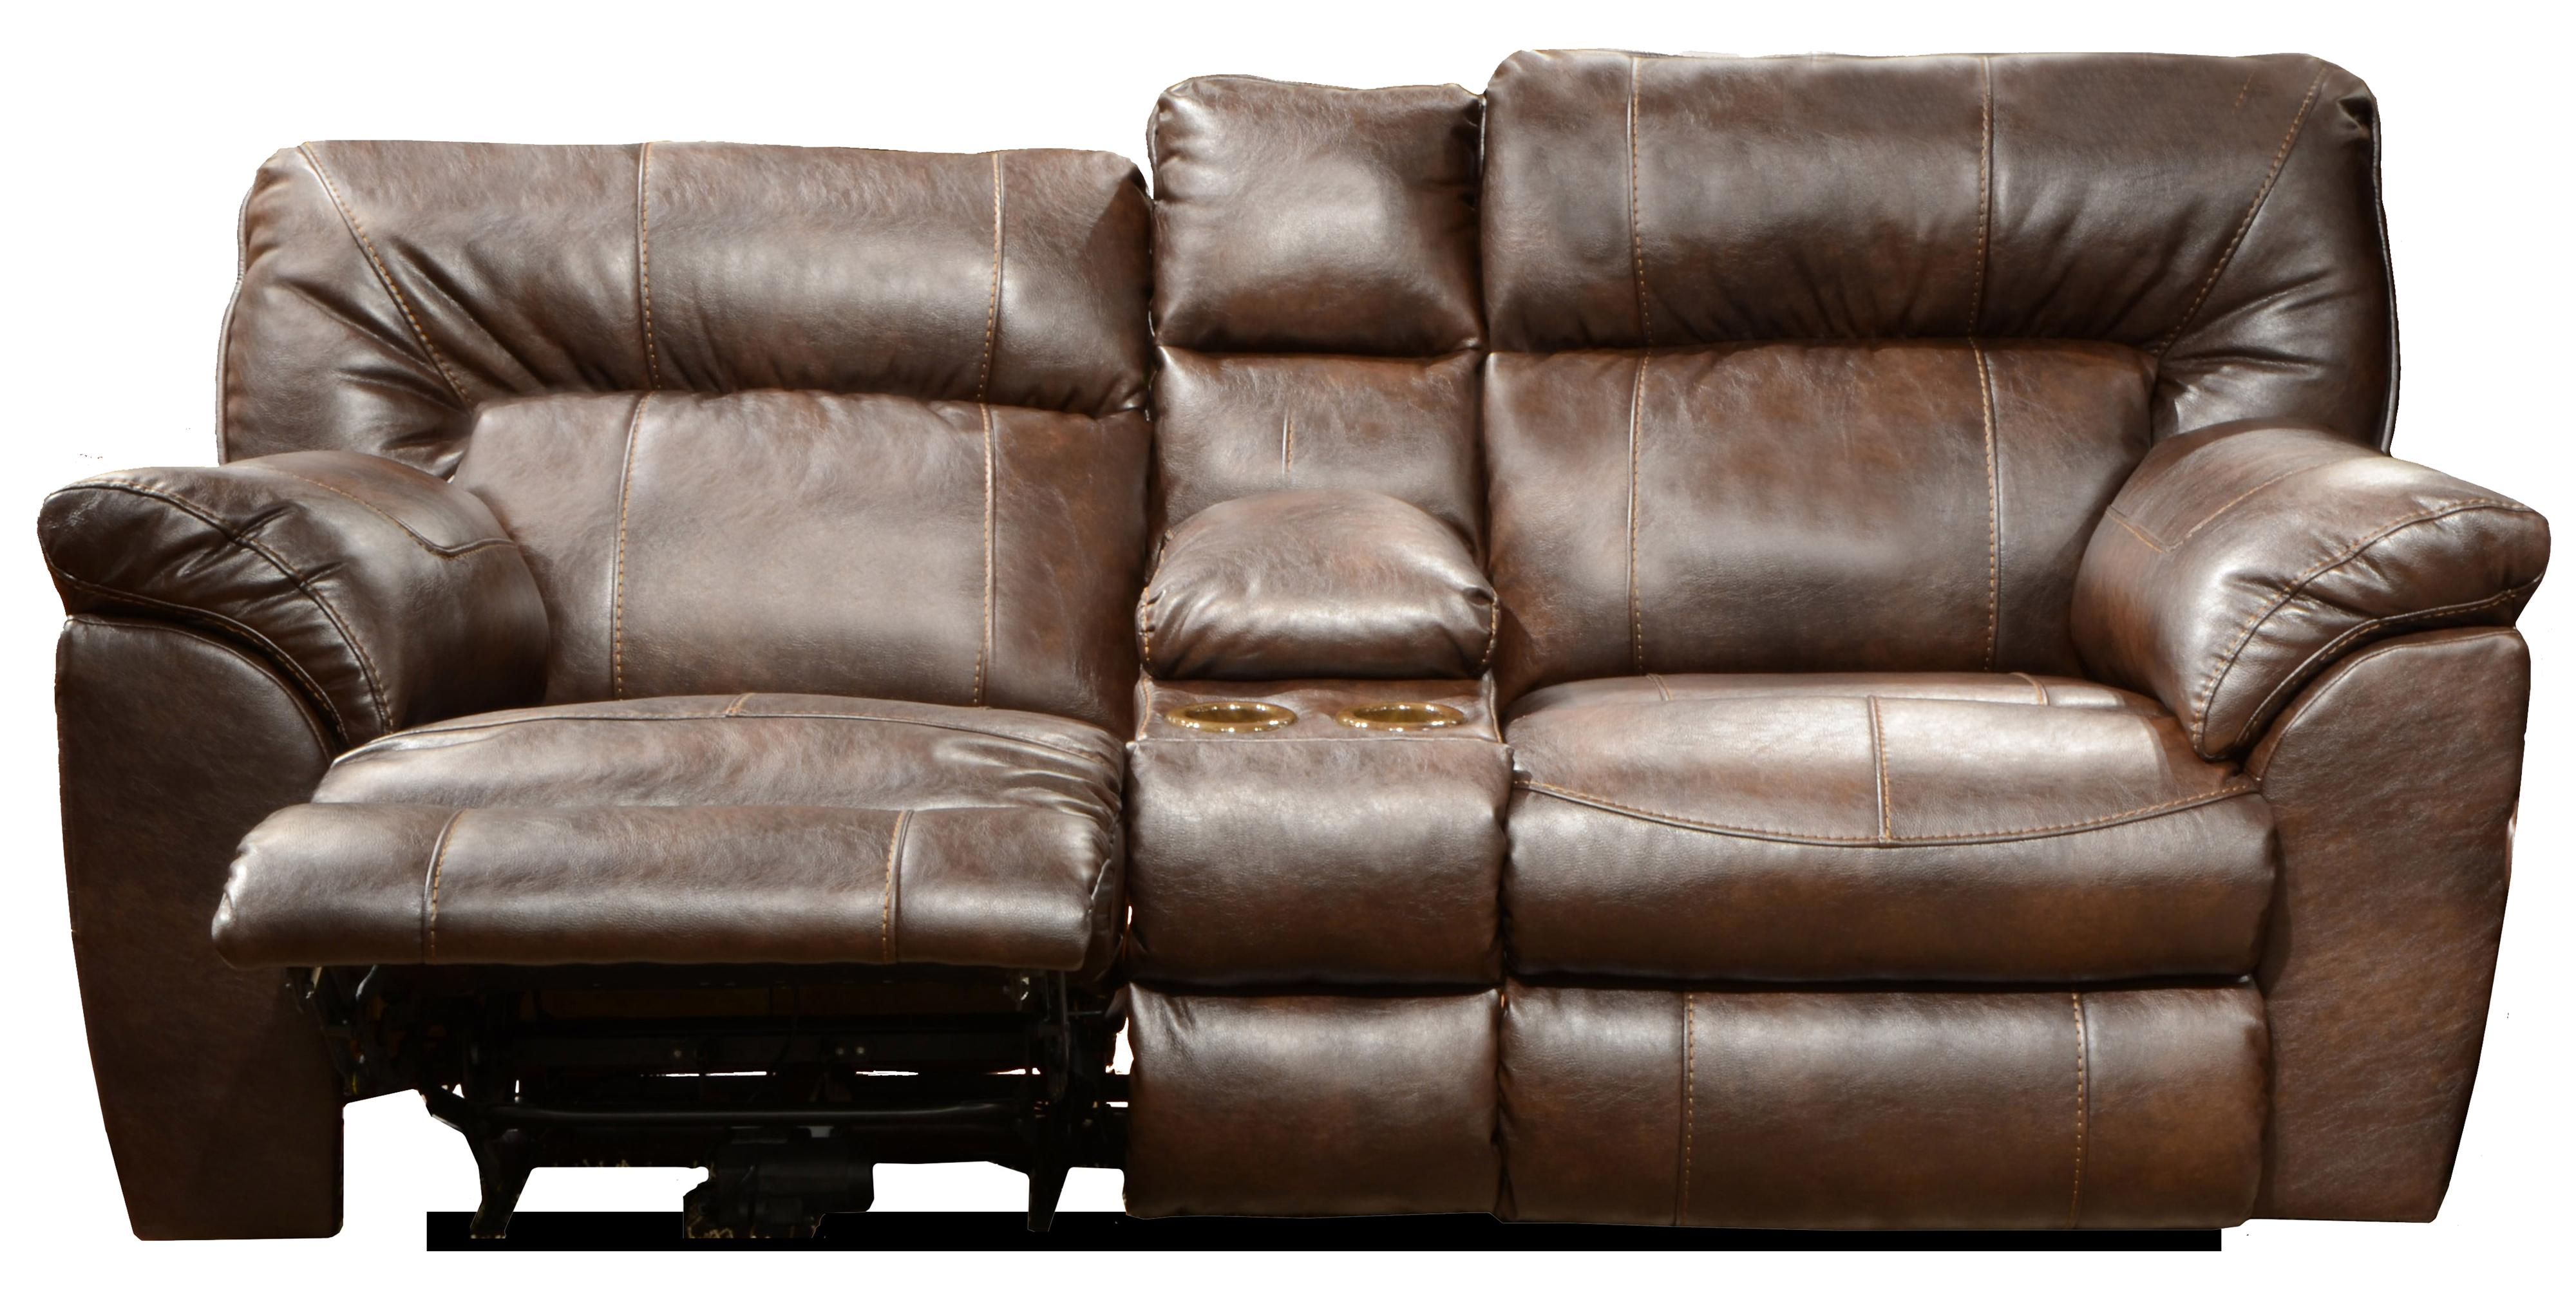 Catnapper nolan power extra wide reclining console loveseat with storage and cup holders Loveseat with cup holders